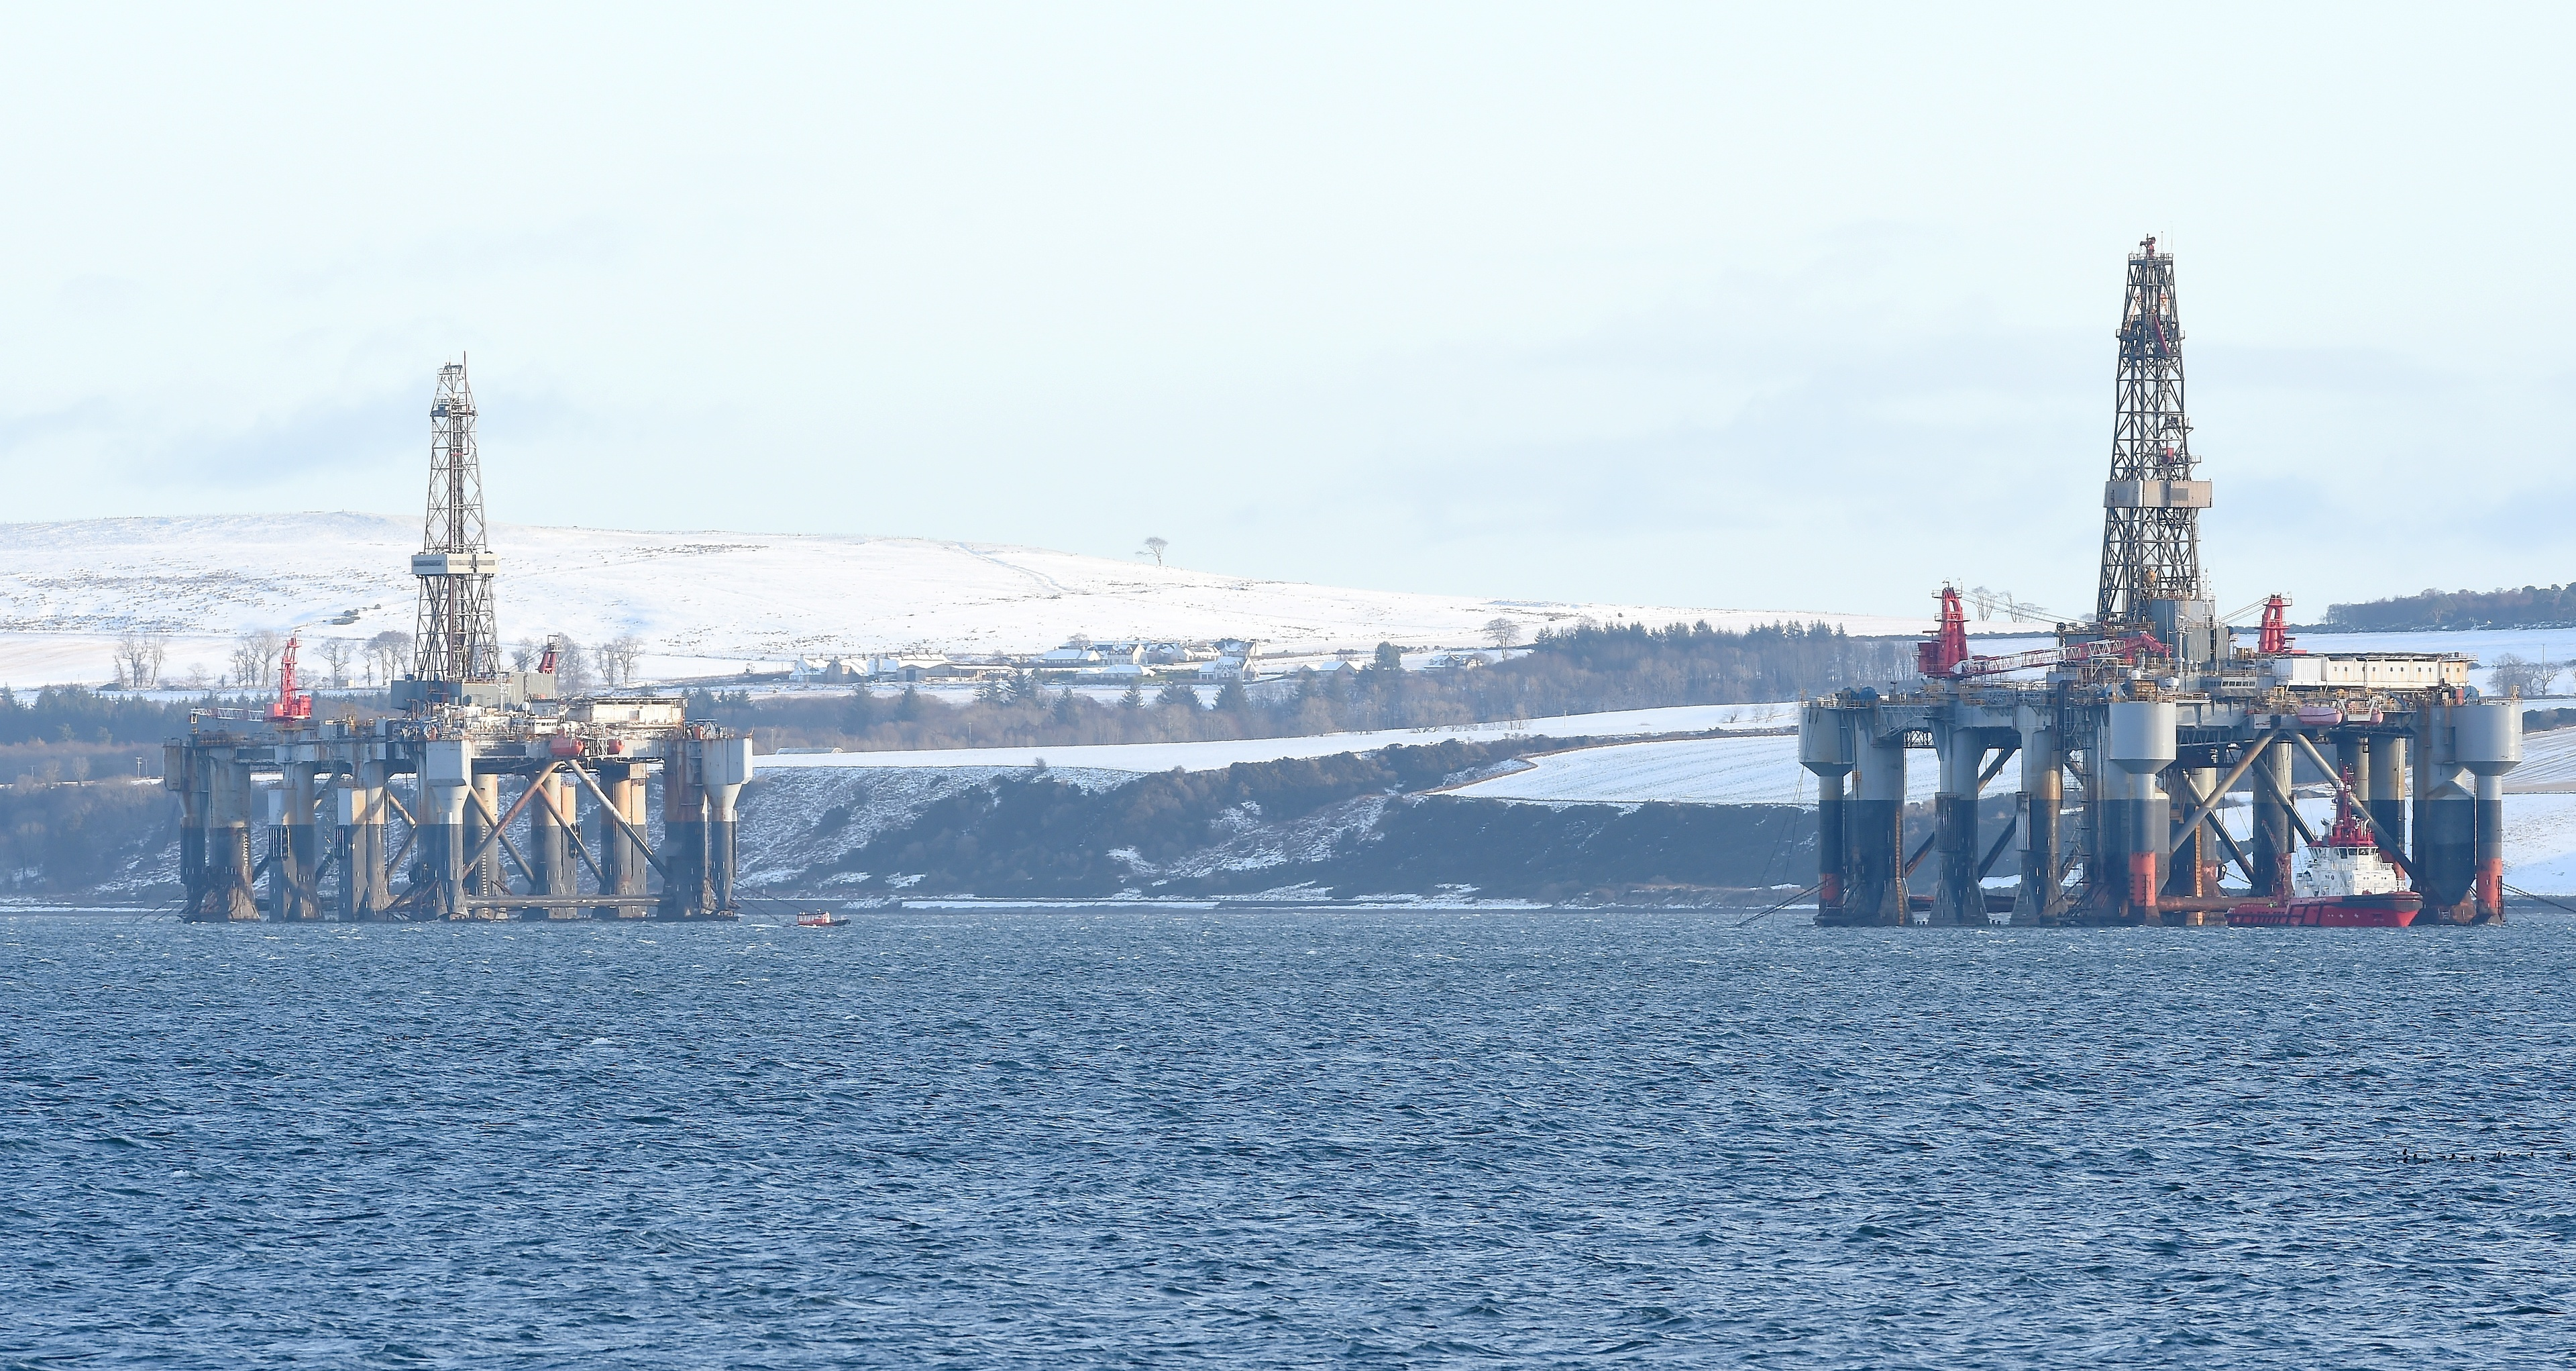 Oil rig twins, Ocean Princess (left) and Ocean Nomad in the Cromarty Firth awaiting shipment.